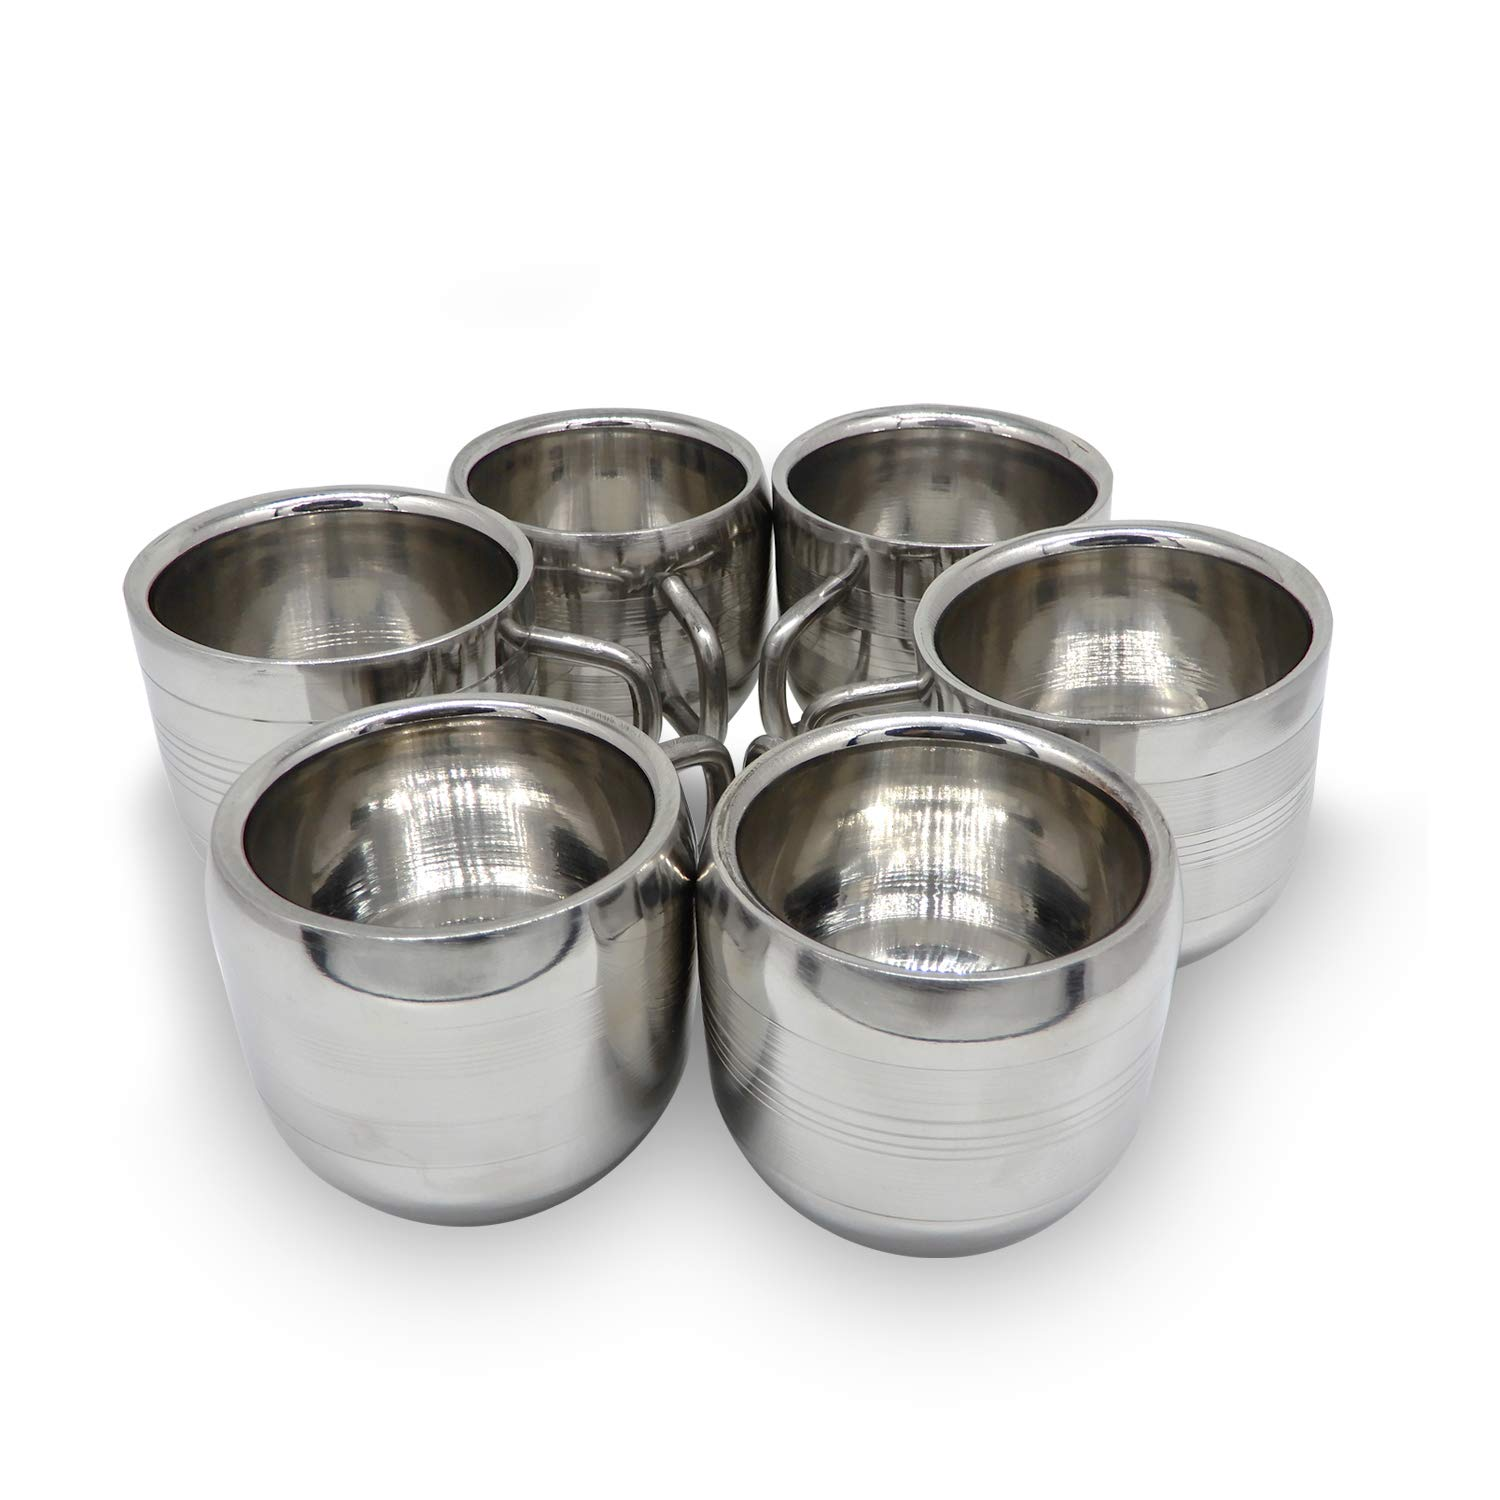 IndiaBigShop Coffee Cup Espresso Cup Mug Set of 6 Double Wall Stainless Steel Tea Cups, Reusable & Stackable Dishwasher Safe